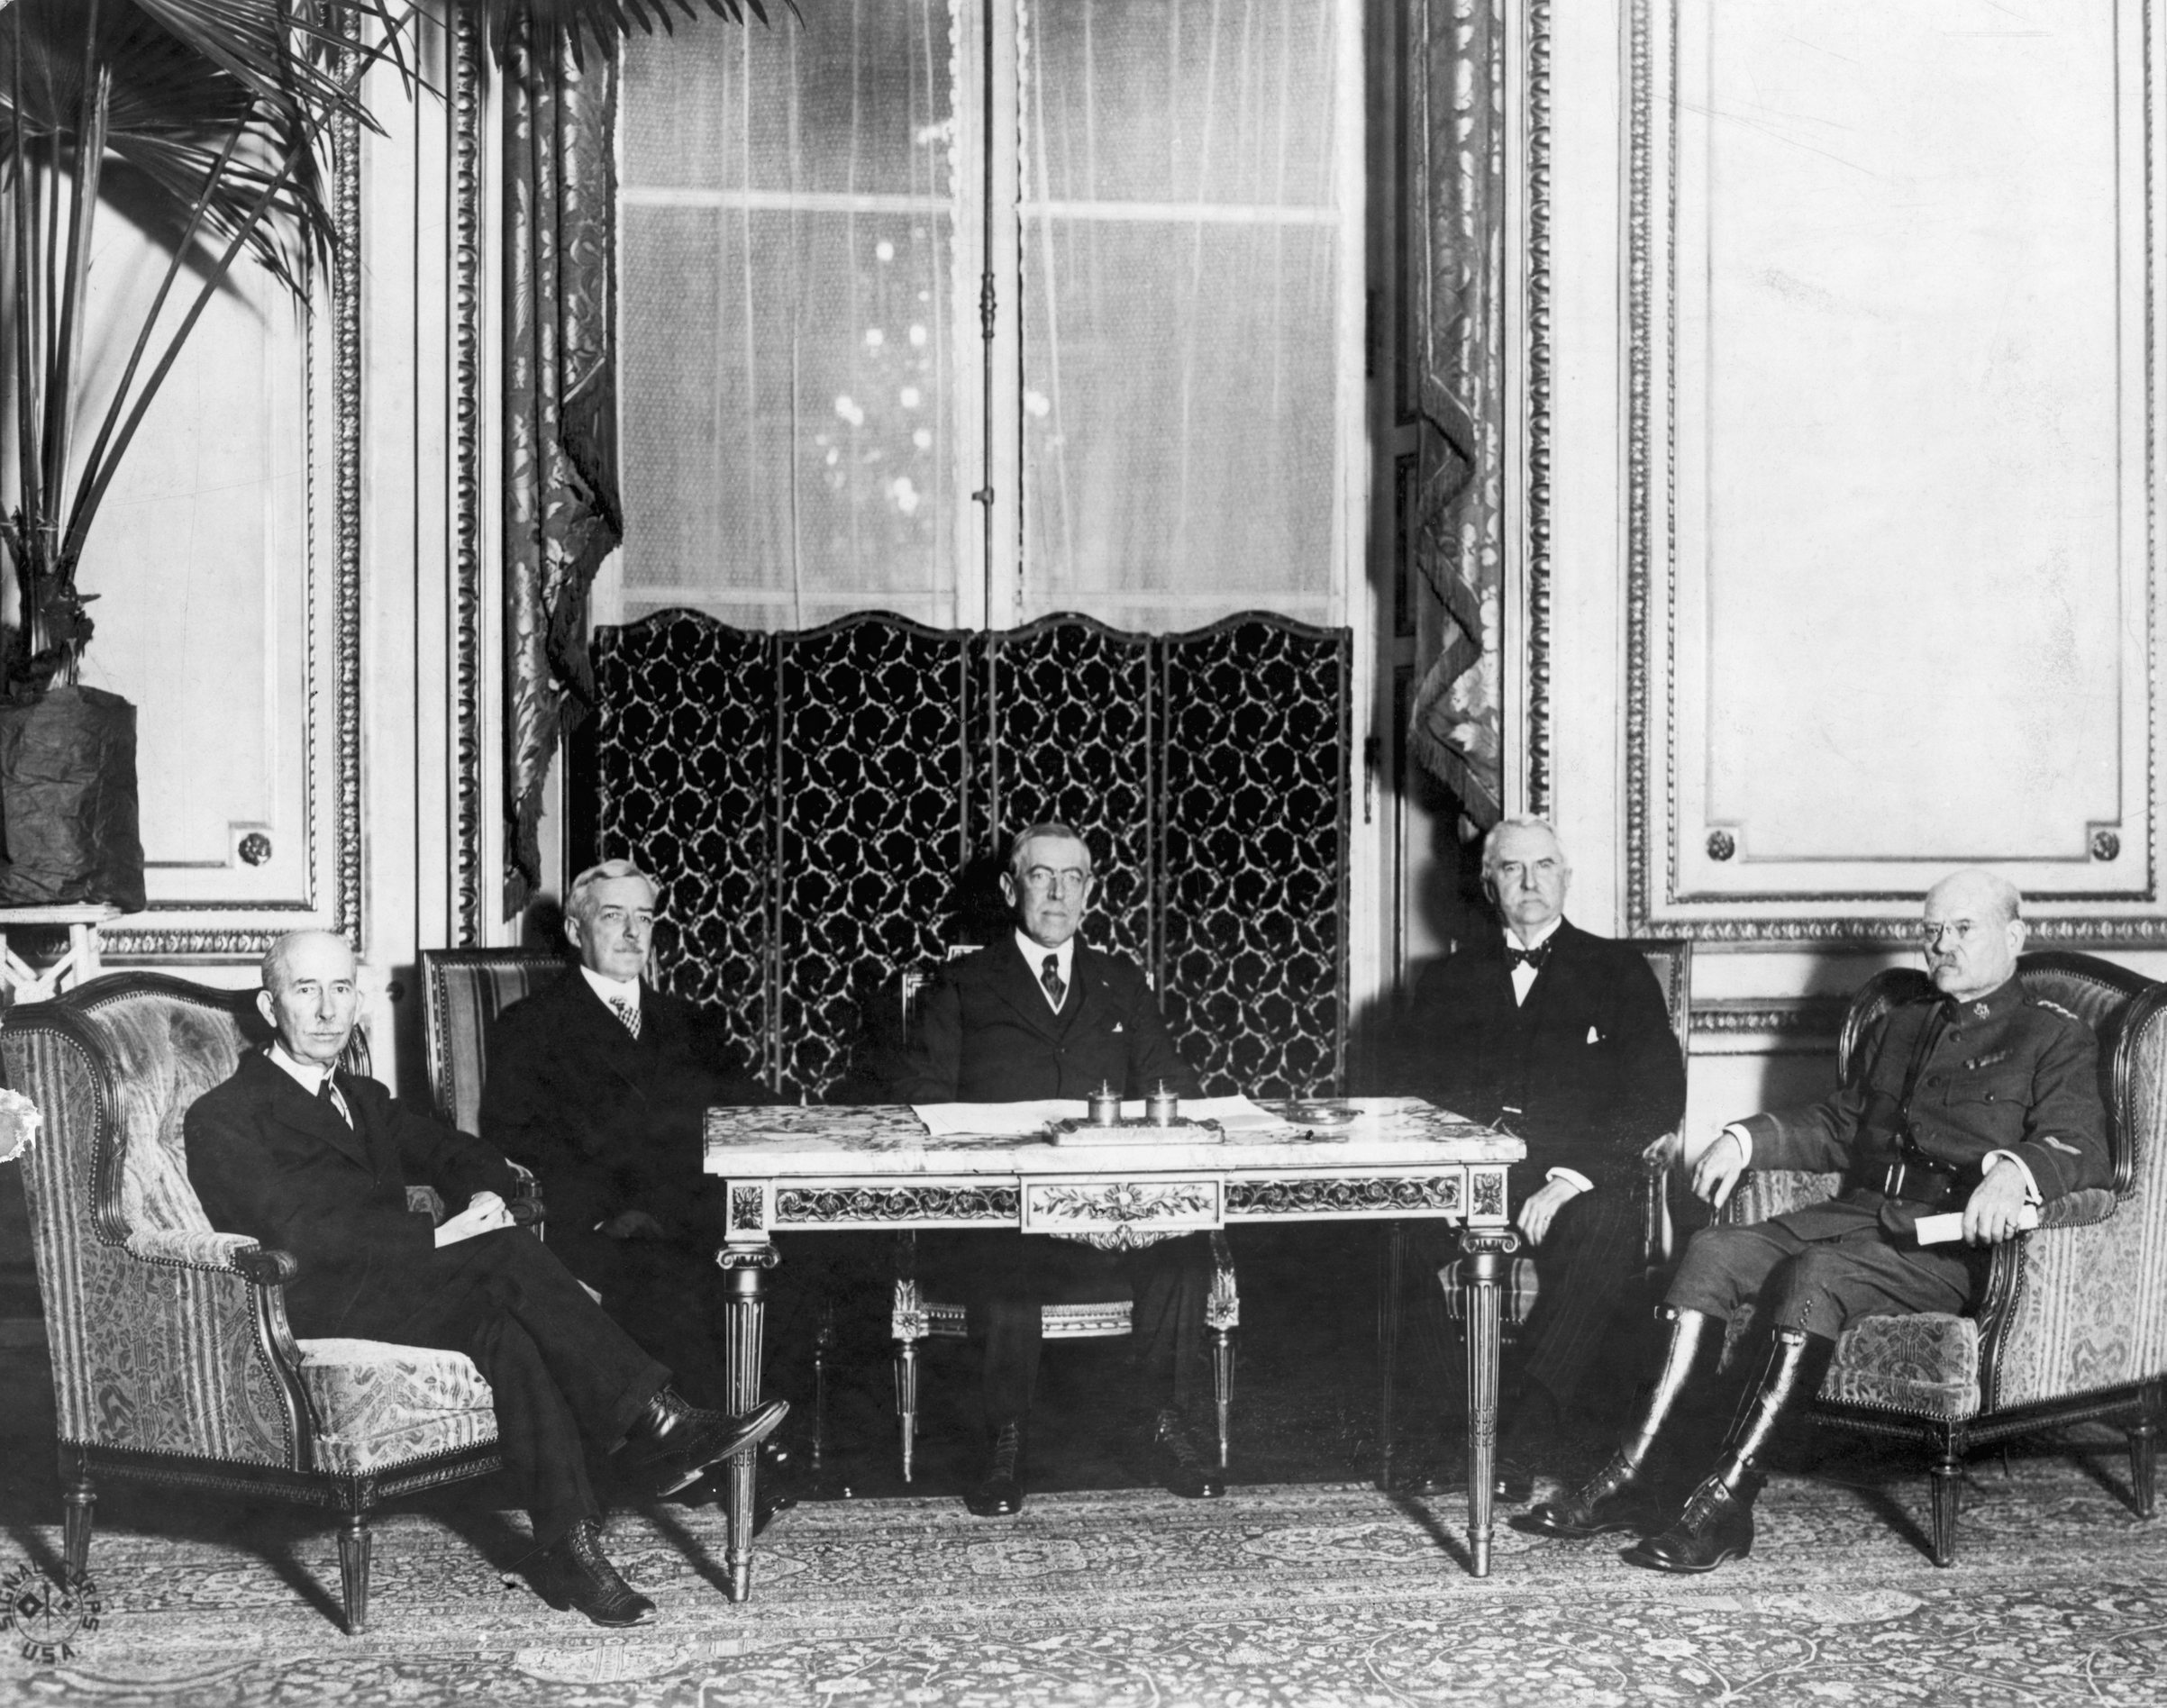 The American delegation at the Versailles Conference. From left to right--House, Lansing, Wilson, Henry White, Gen. Bliss. Undated photograph.